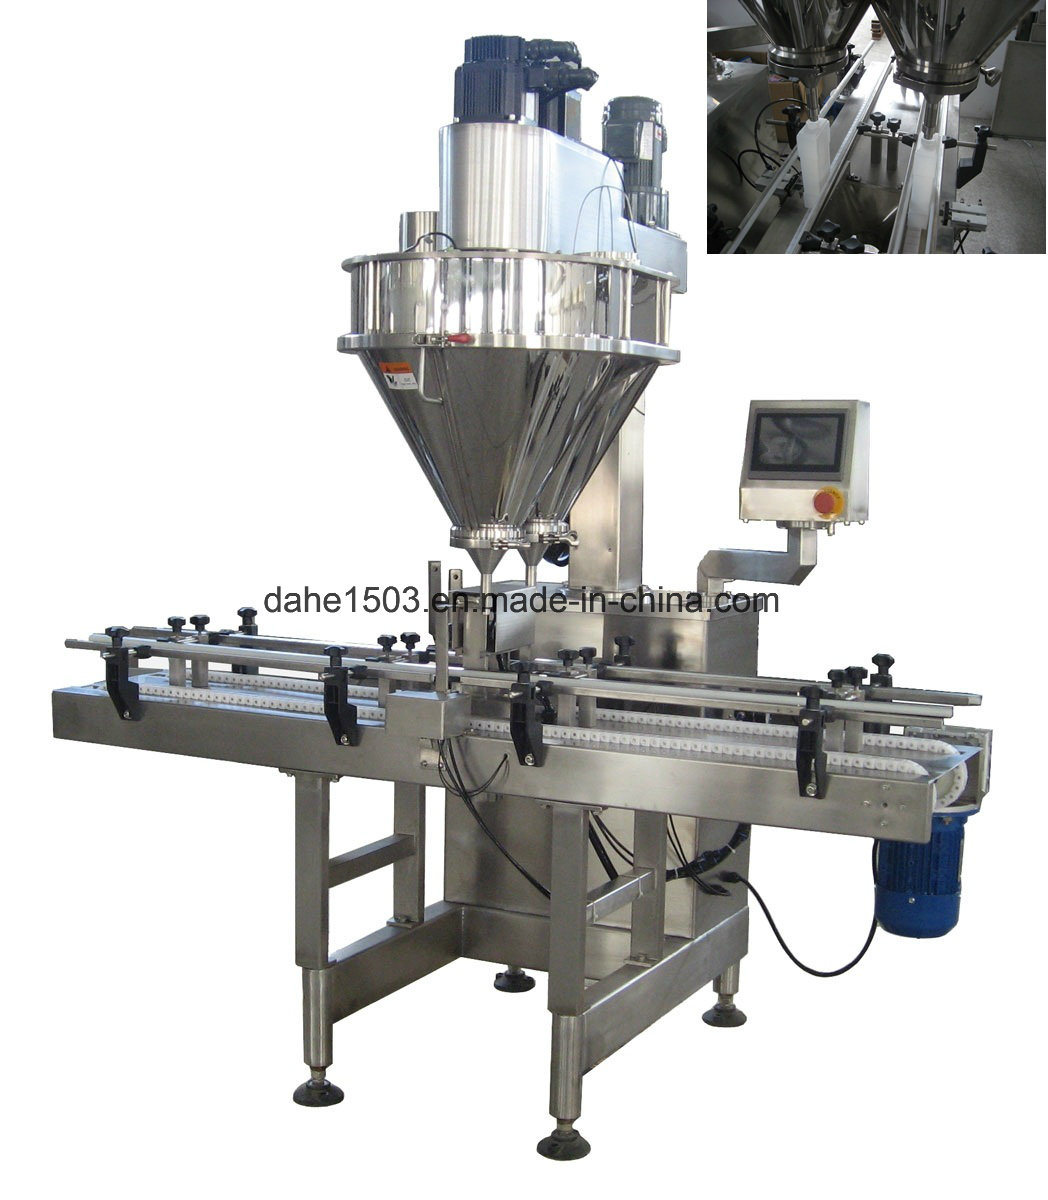 Accurate Two Lanes Powder Filling Machine